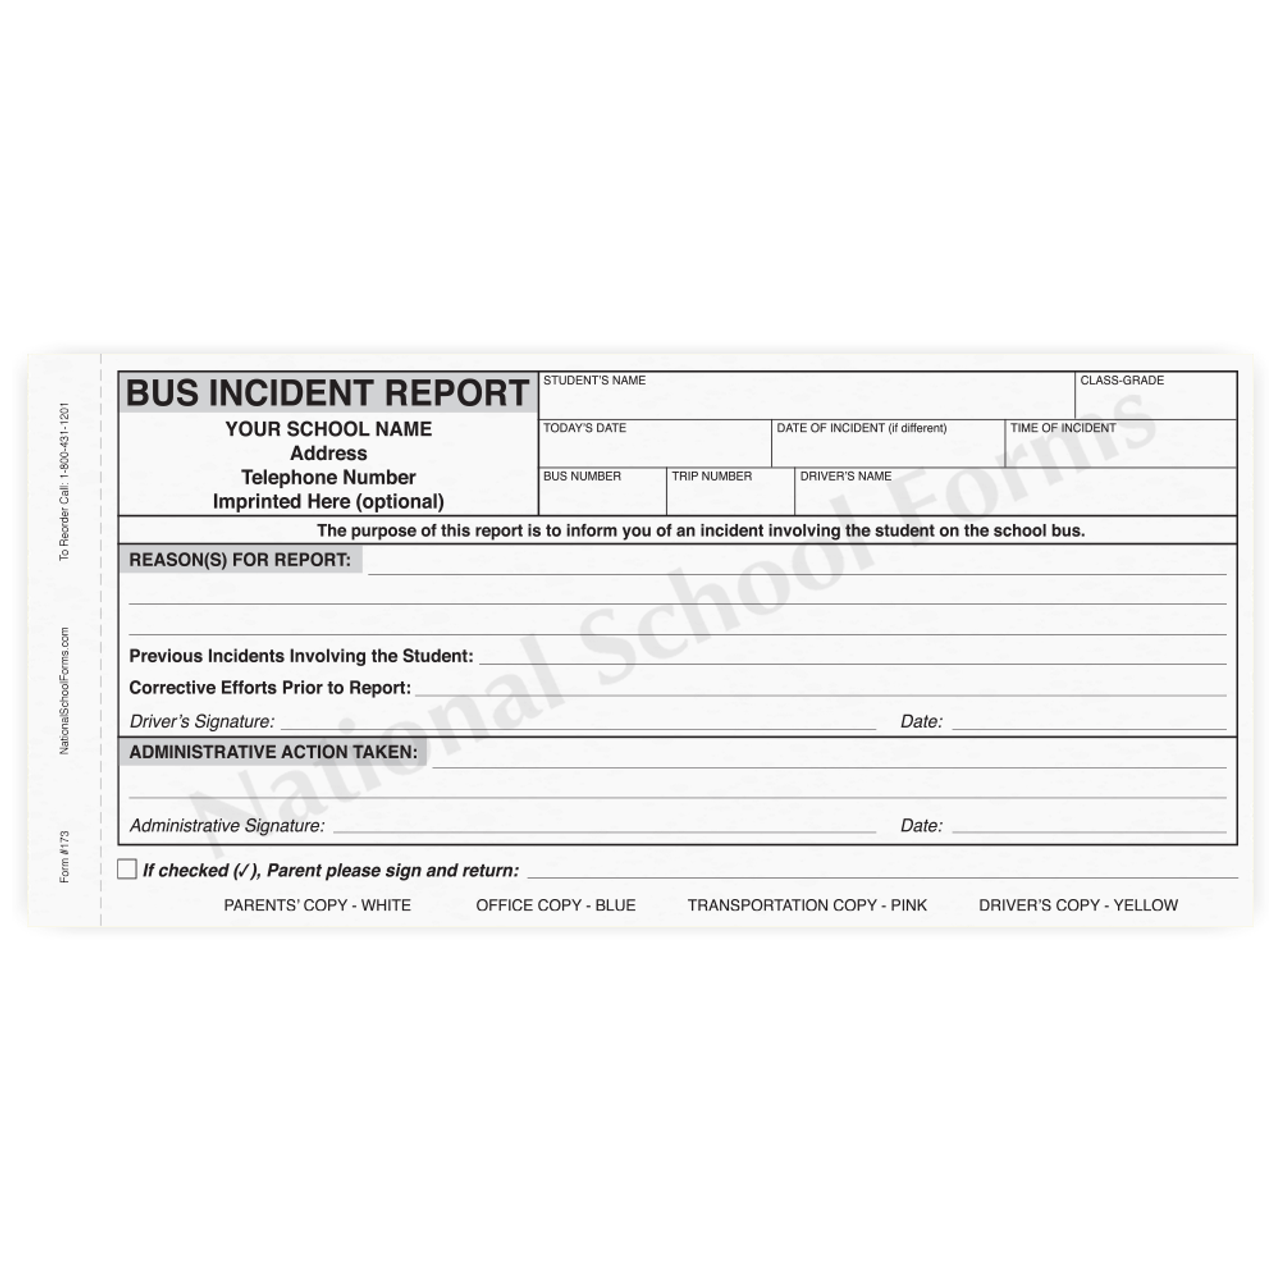 Bus Incident Report (173) - 4 part carbonless form with optional Imprint